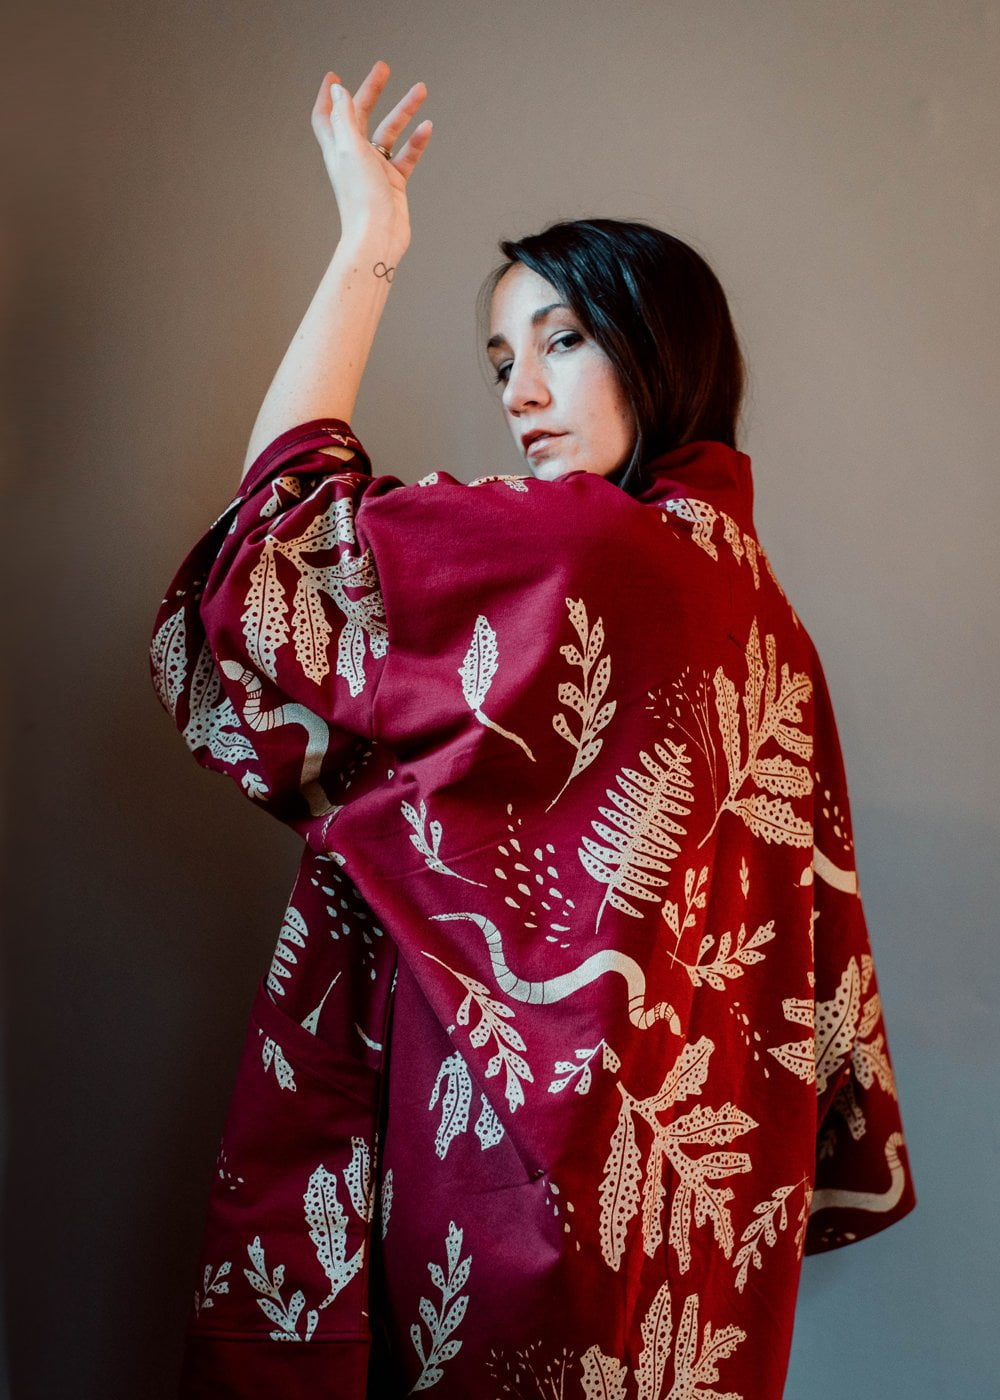 The Tapestry Tunic - Mulled Wine - Oversized Kimono Cardigan in Metallic Gold